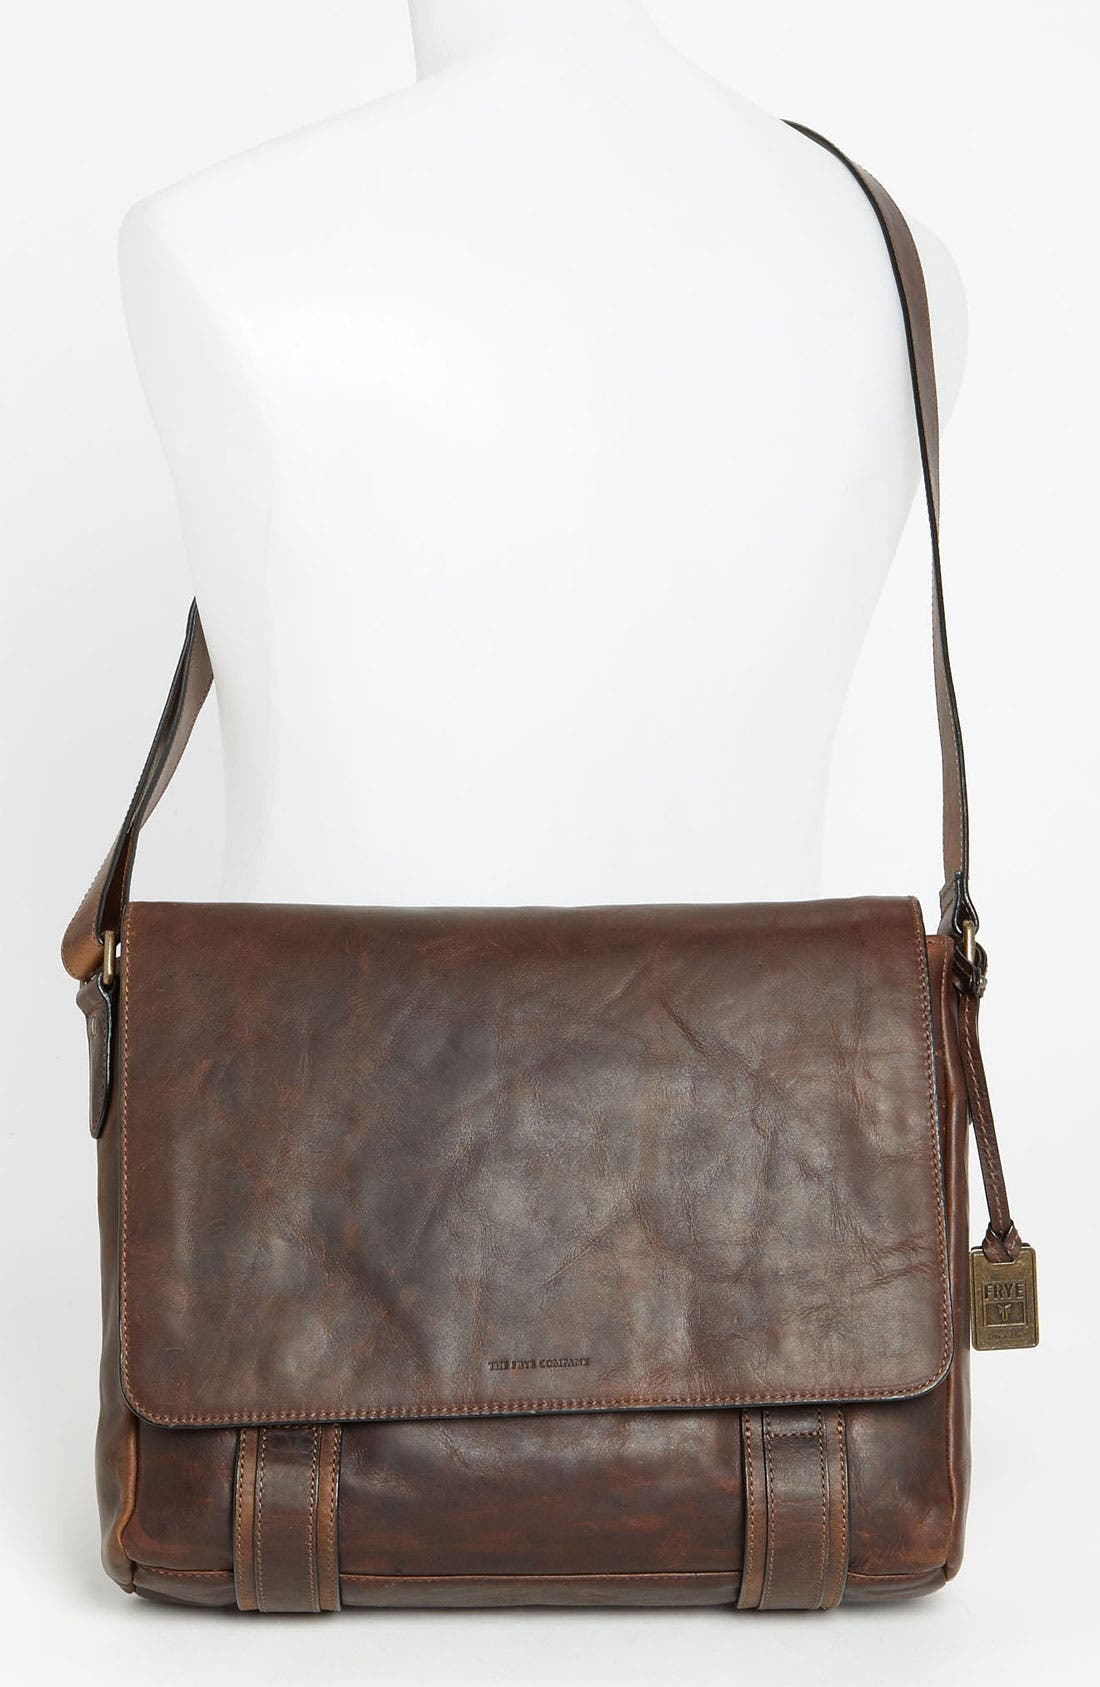 'Logan' Messenger Bag,                             Alternate thumbnail 8, color,                             ANTIQUE DARK BROWN